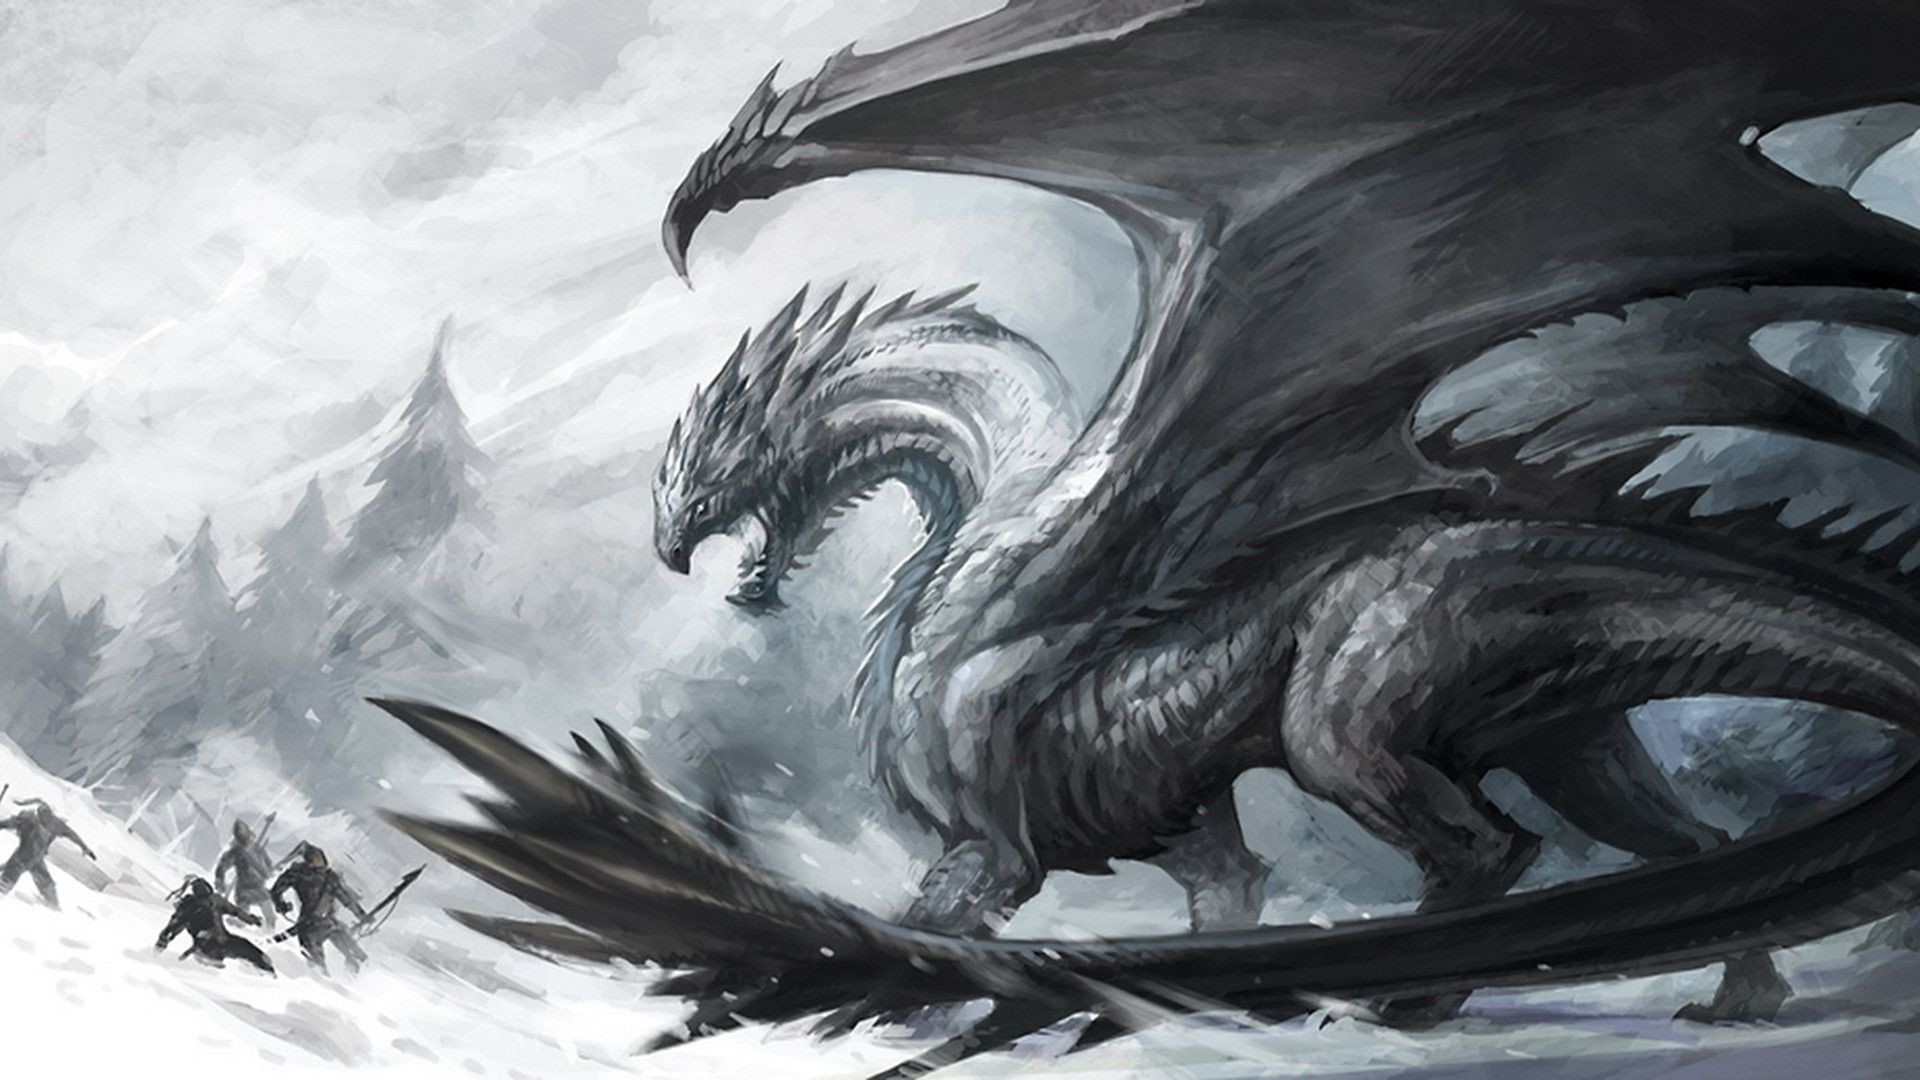 1920x1080 Top HD Dragon Wallpapers, Images, Backgrounds, Desktop 1280×1024 Black  Dragon Wallpapers